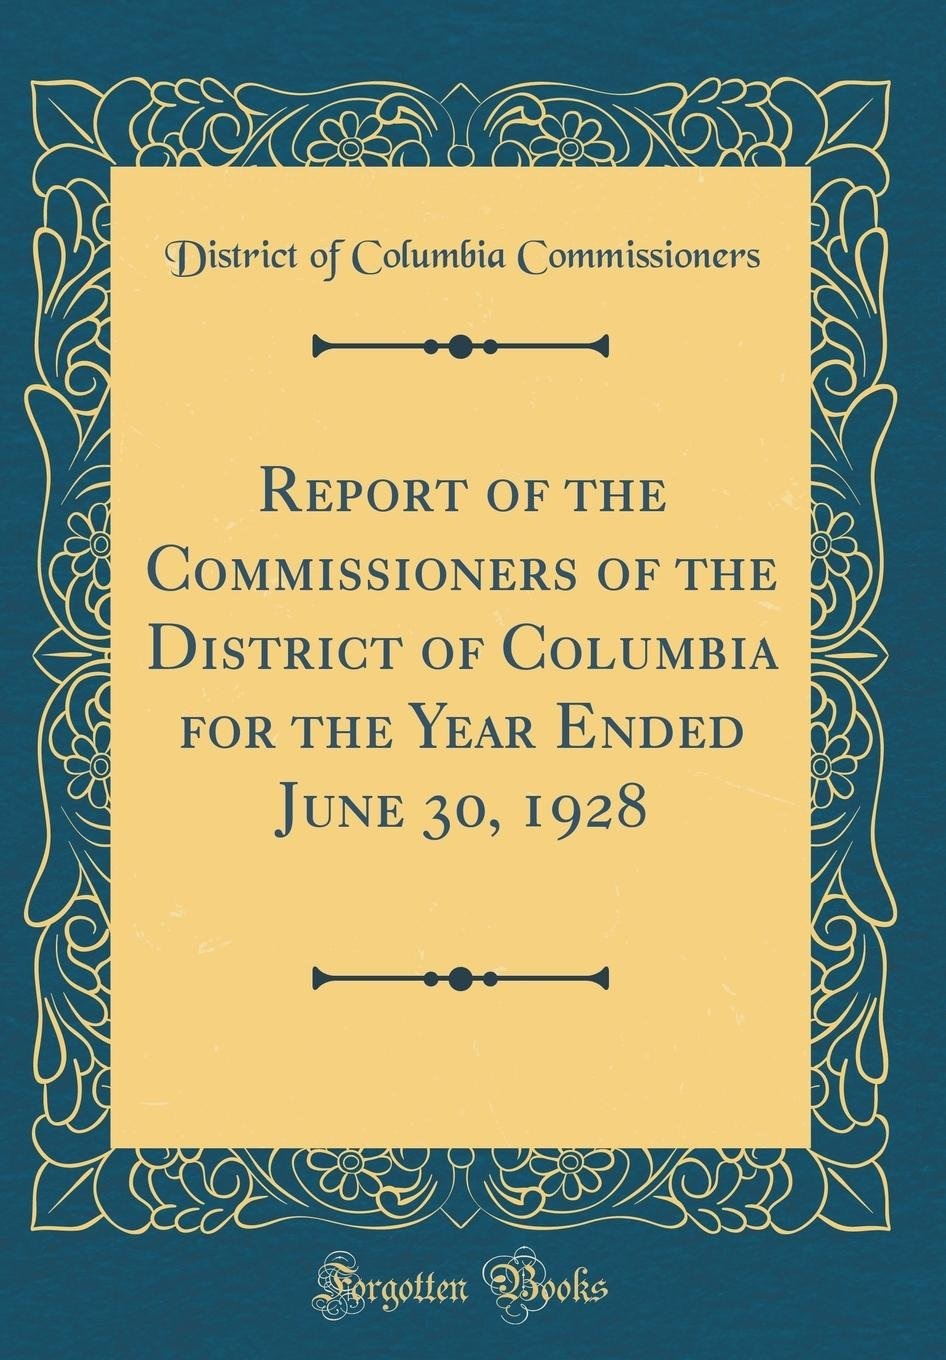 Report of the Commissioners of the District of Columbia for the Year Ended June 30, 1928 (Classic Reprint) PDF